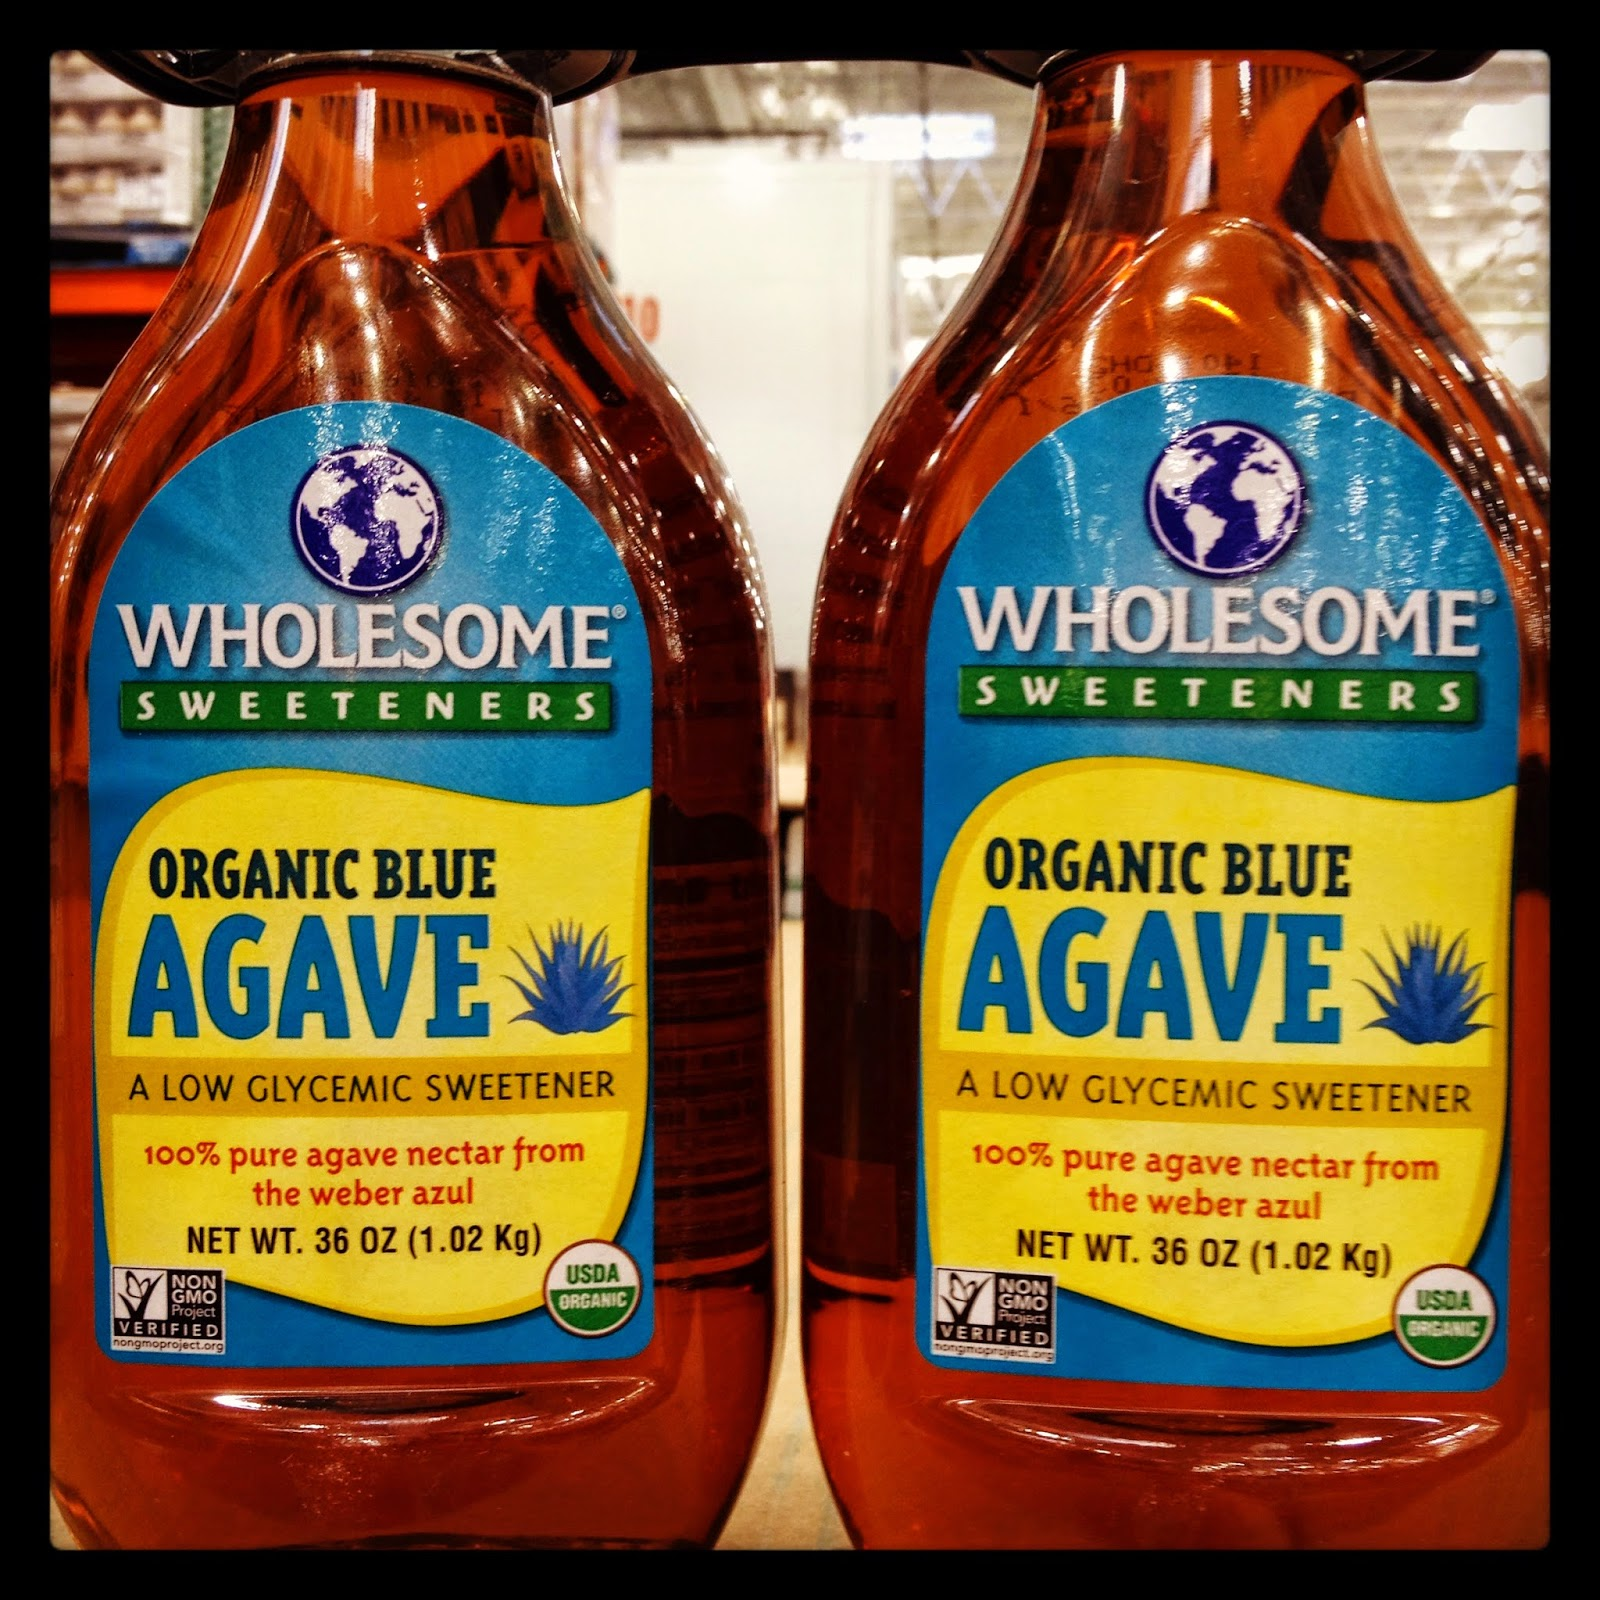 Wholesome Sweeteners Vegan Organic Blue Agave Nectar Sweetener